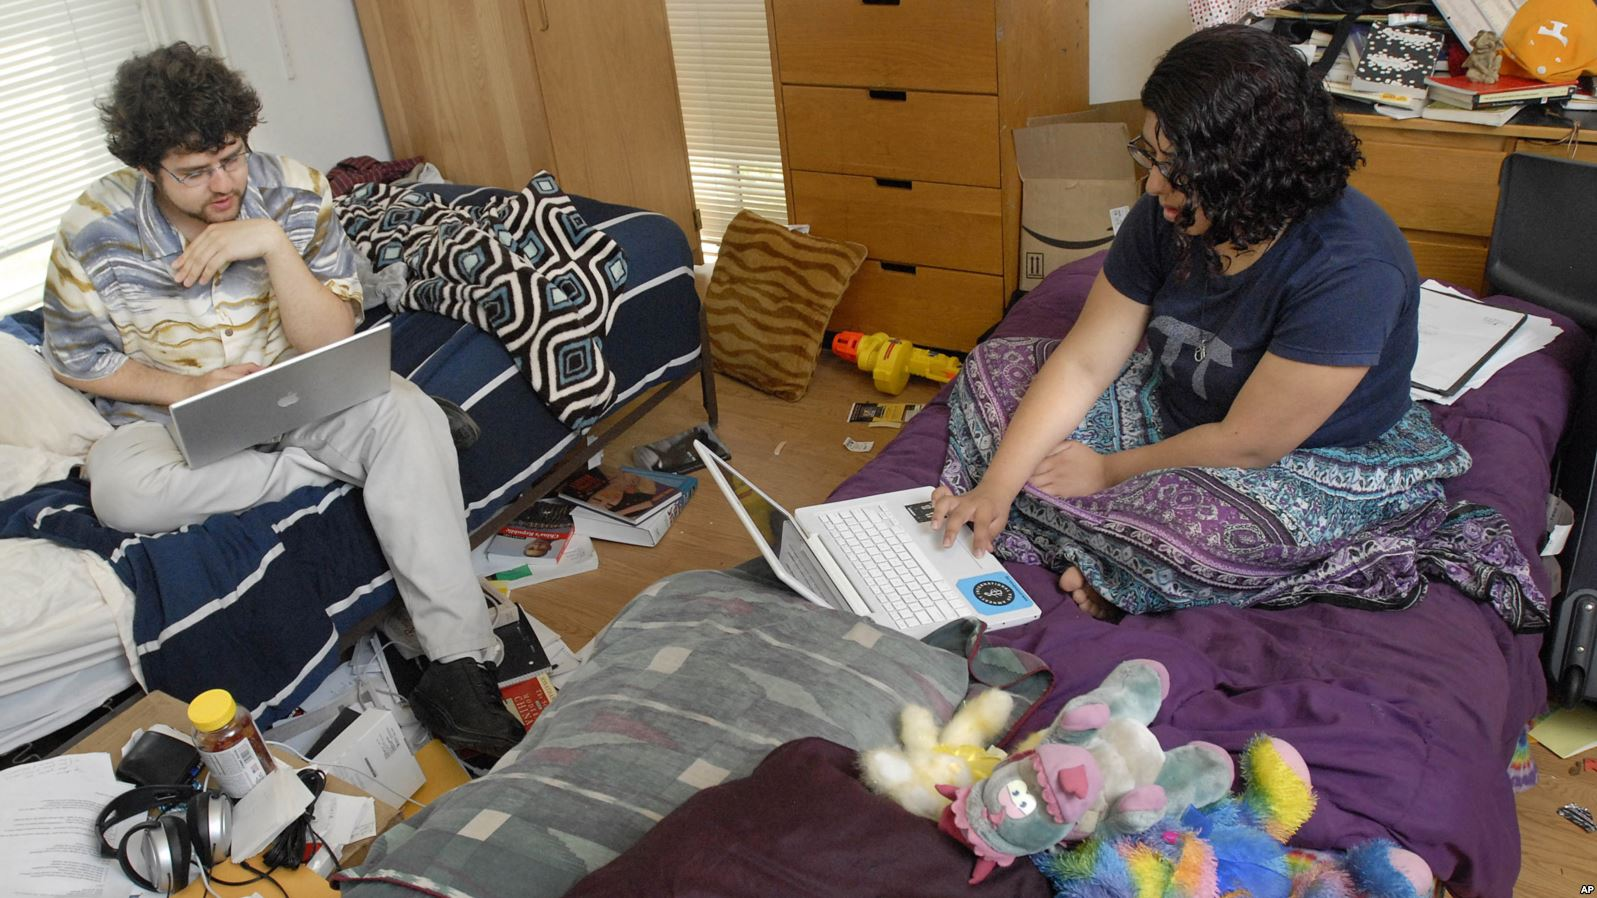 Hot Dorm Rooms Could Affect Students' Memory - Voice of America